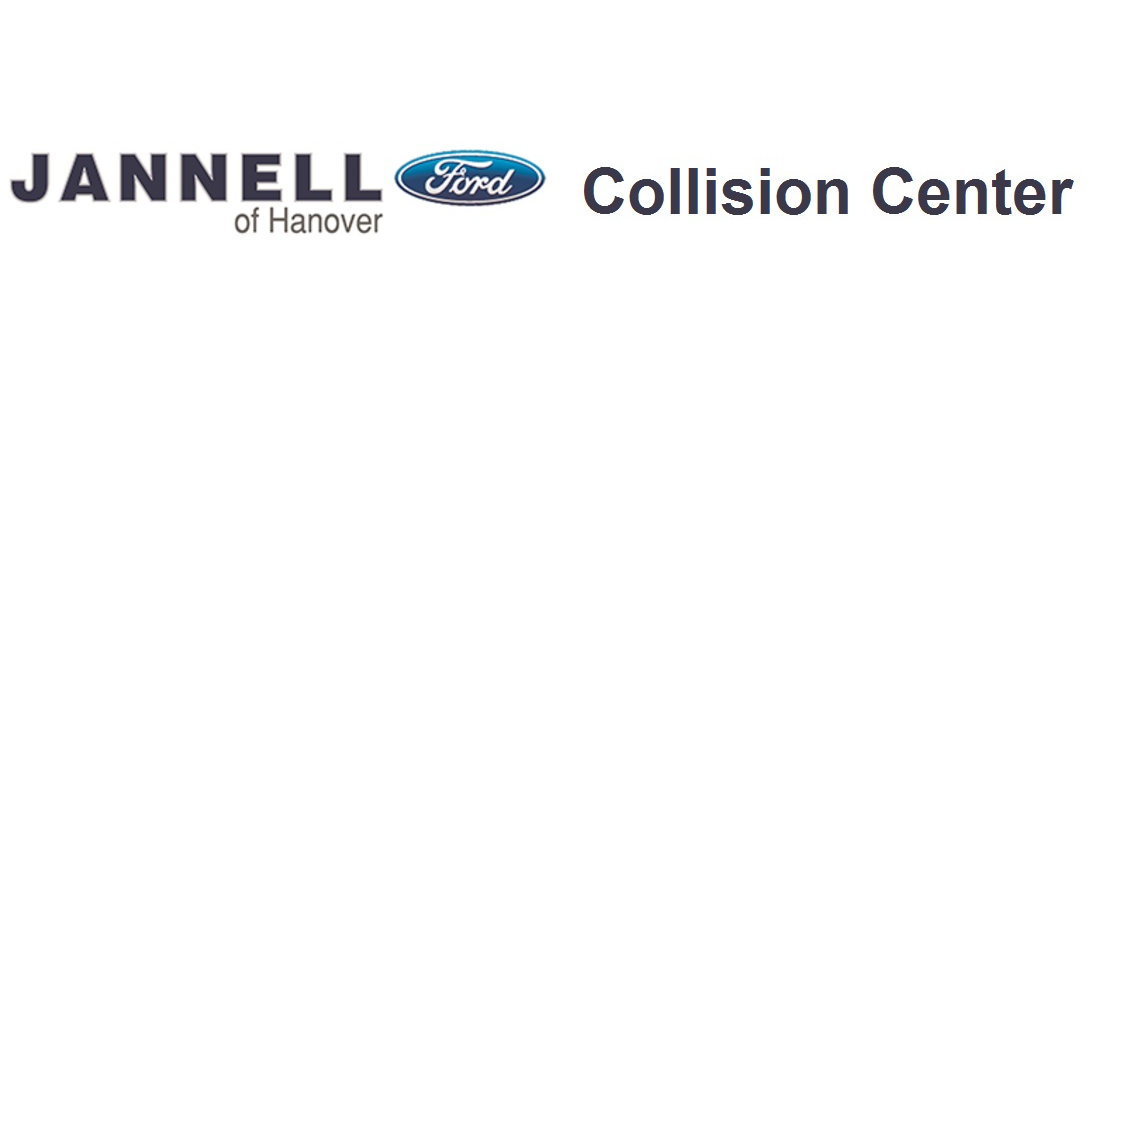 Jannell Collision Center image 1